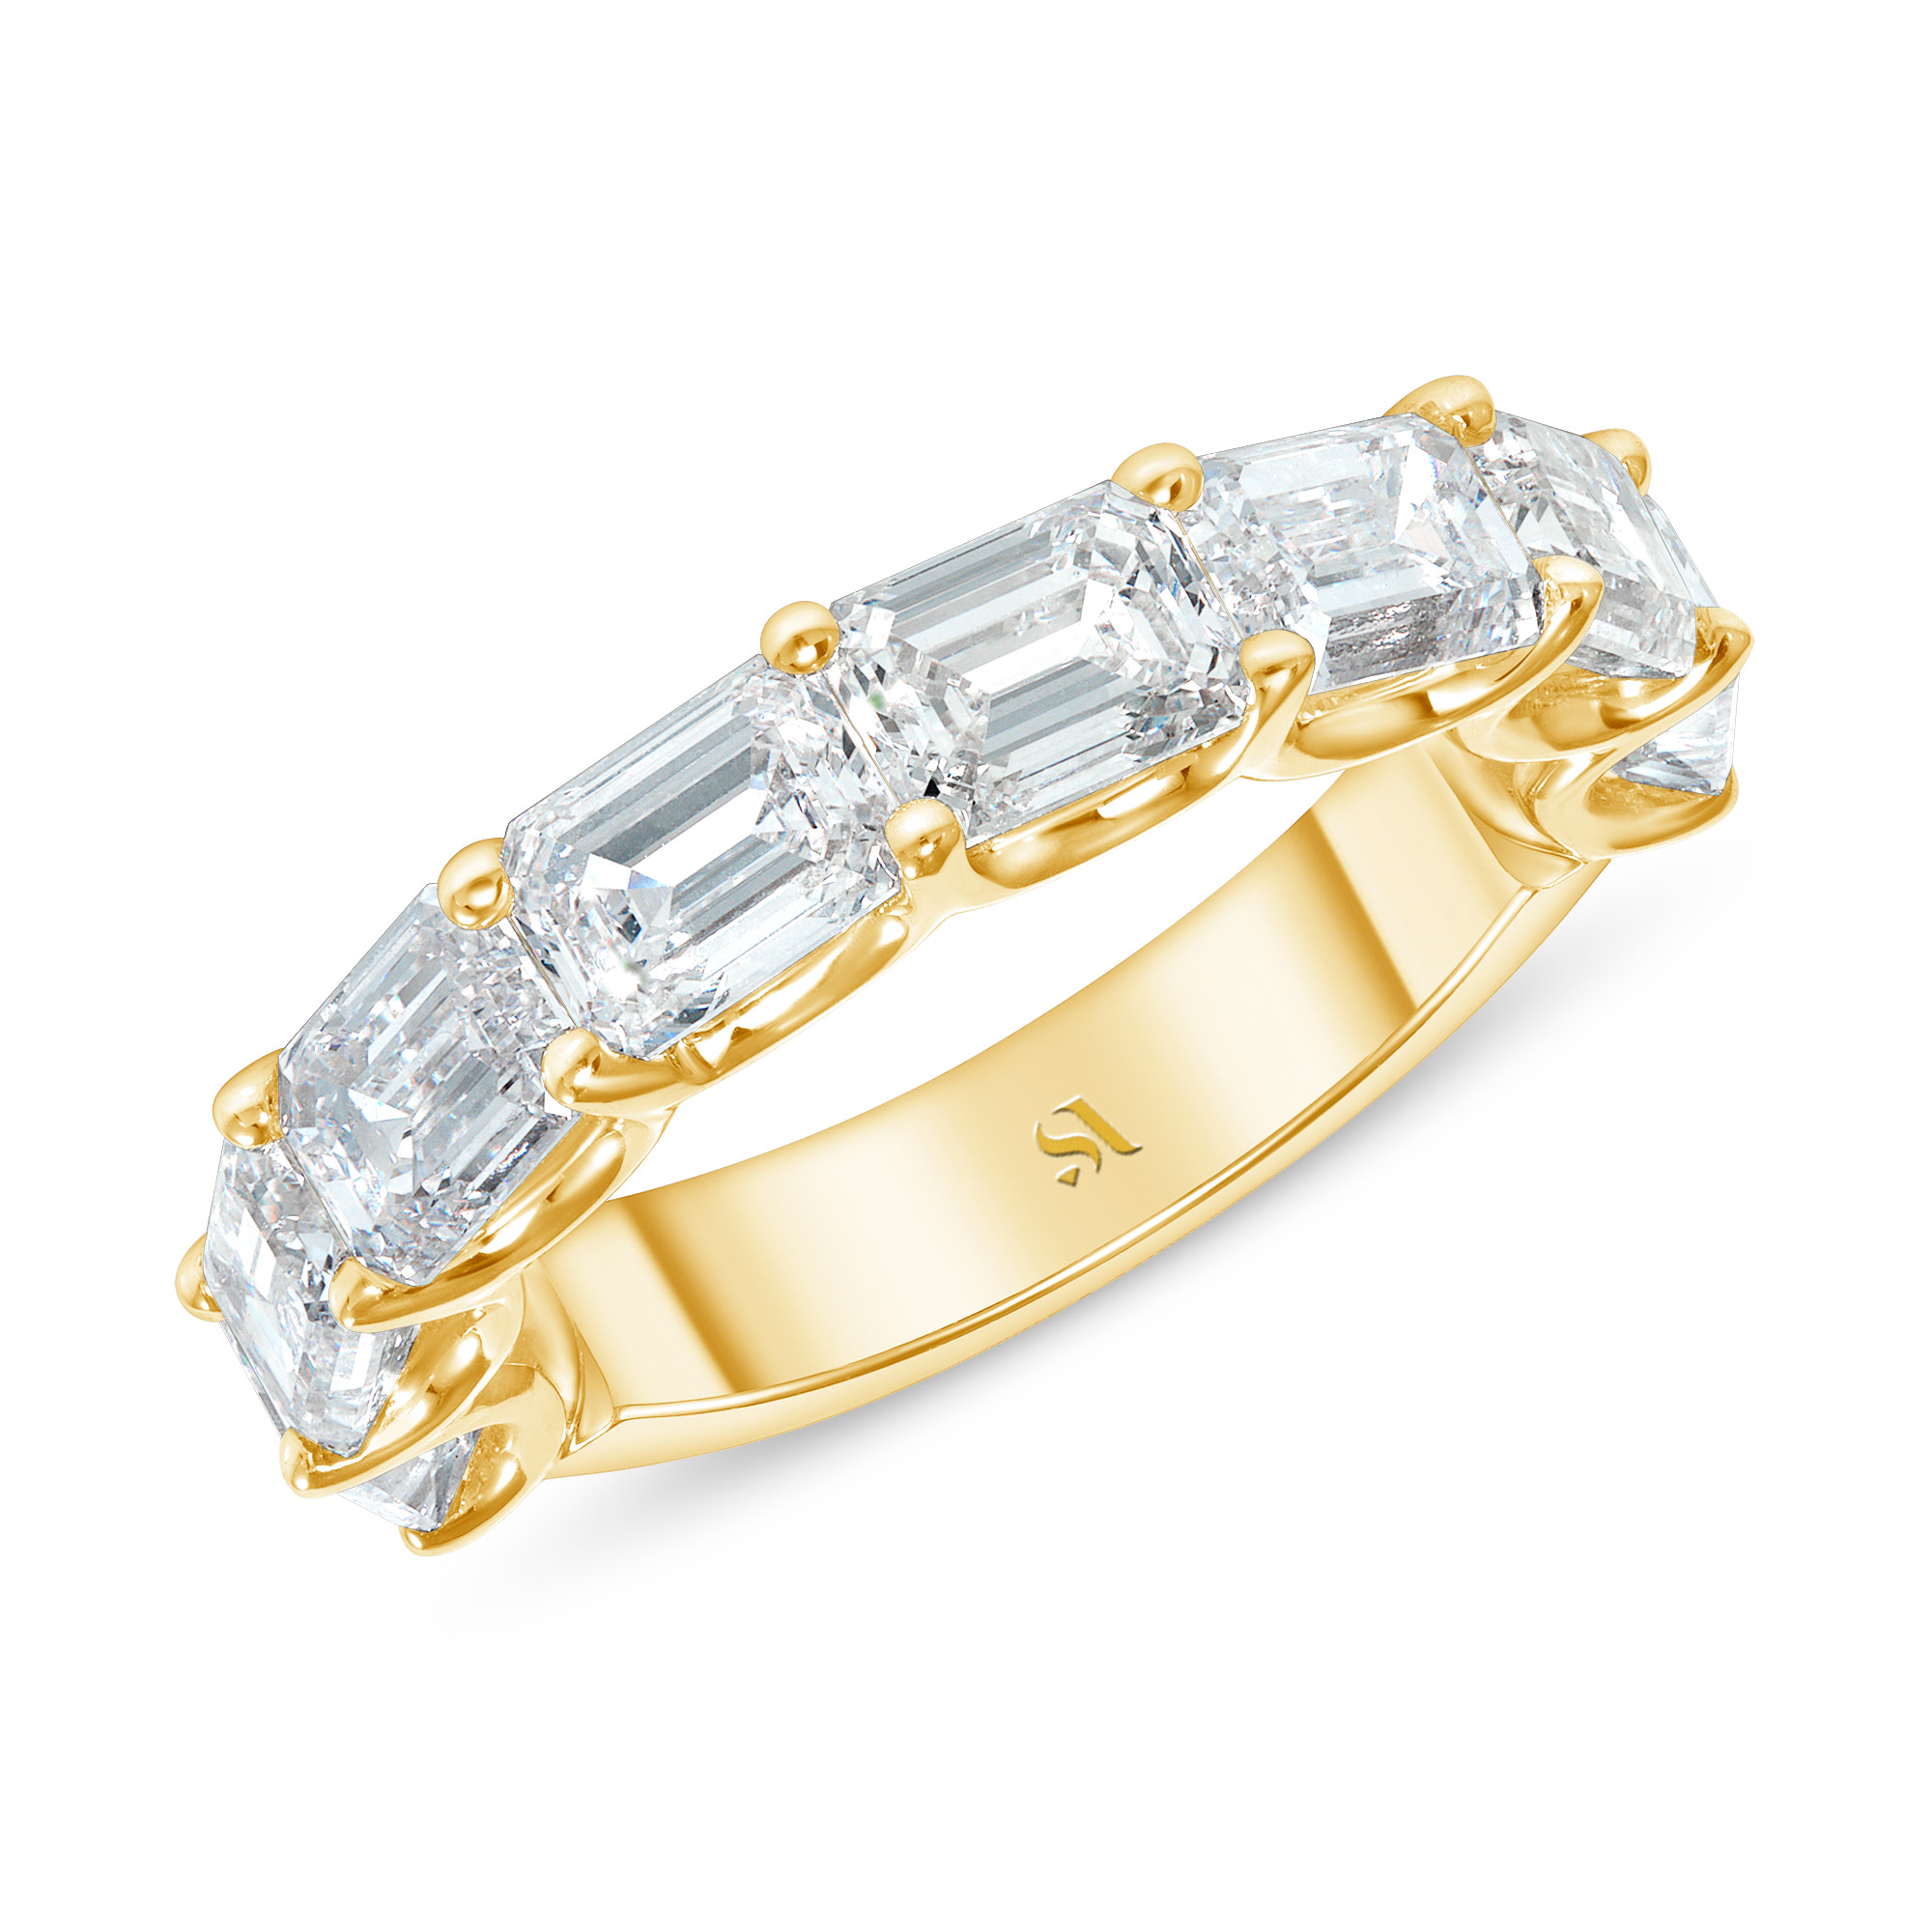 Emerald cut diamond East west set on 18k yellow gold Halfway Eternity Band